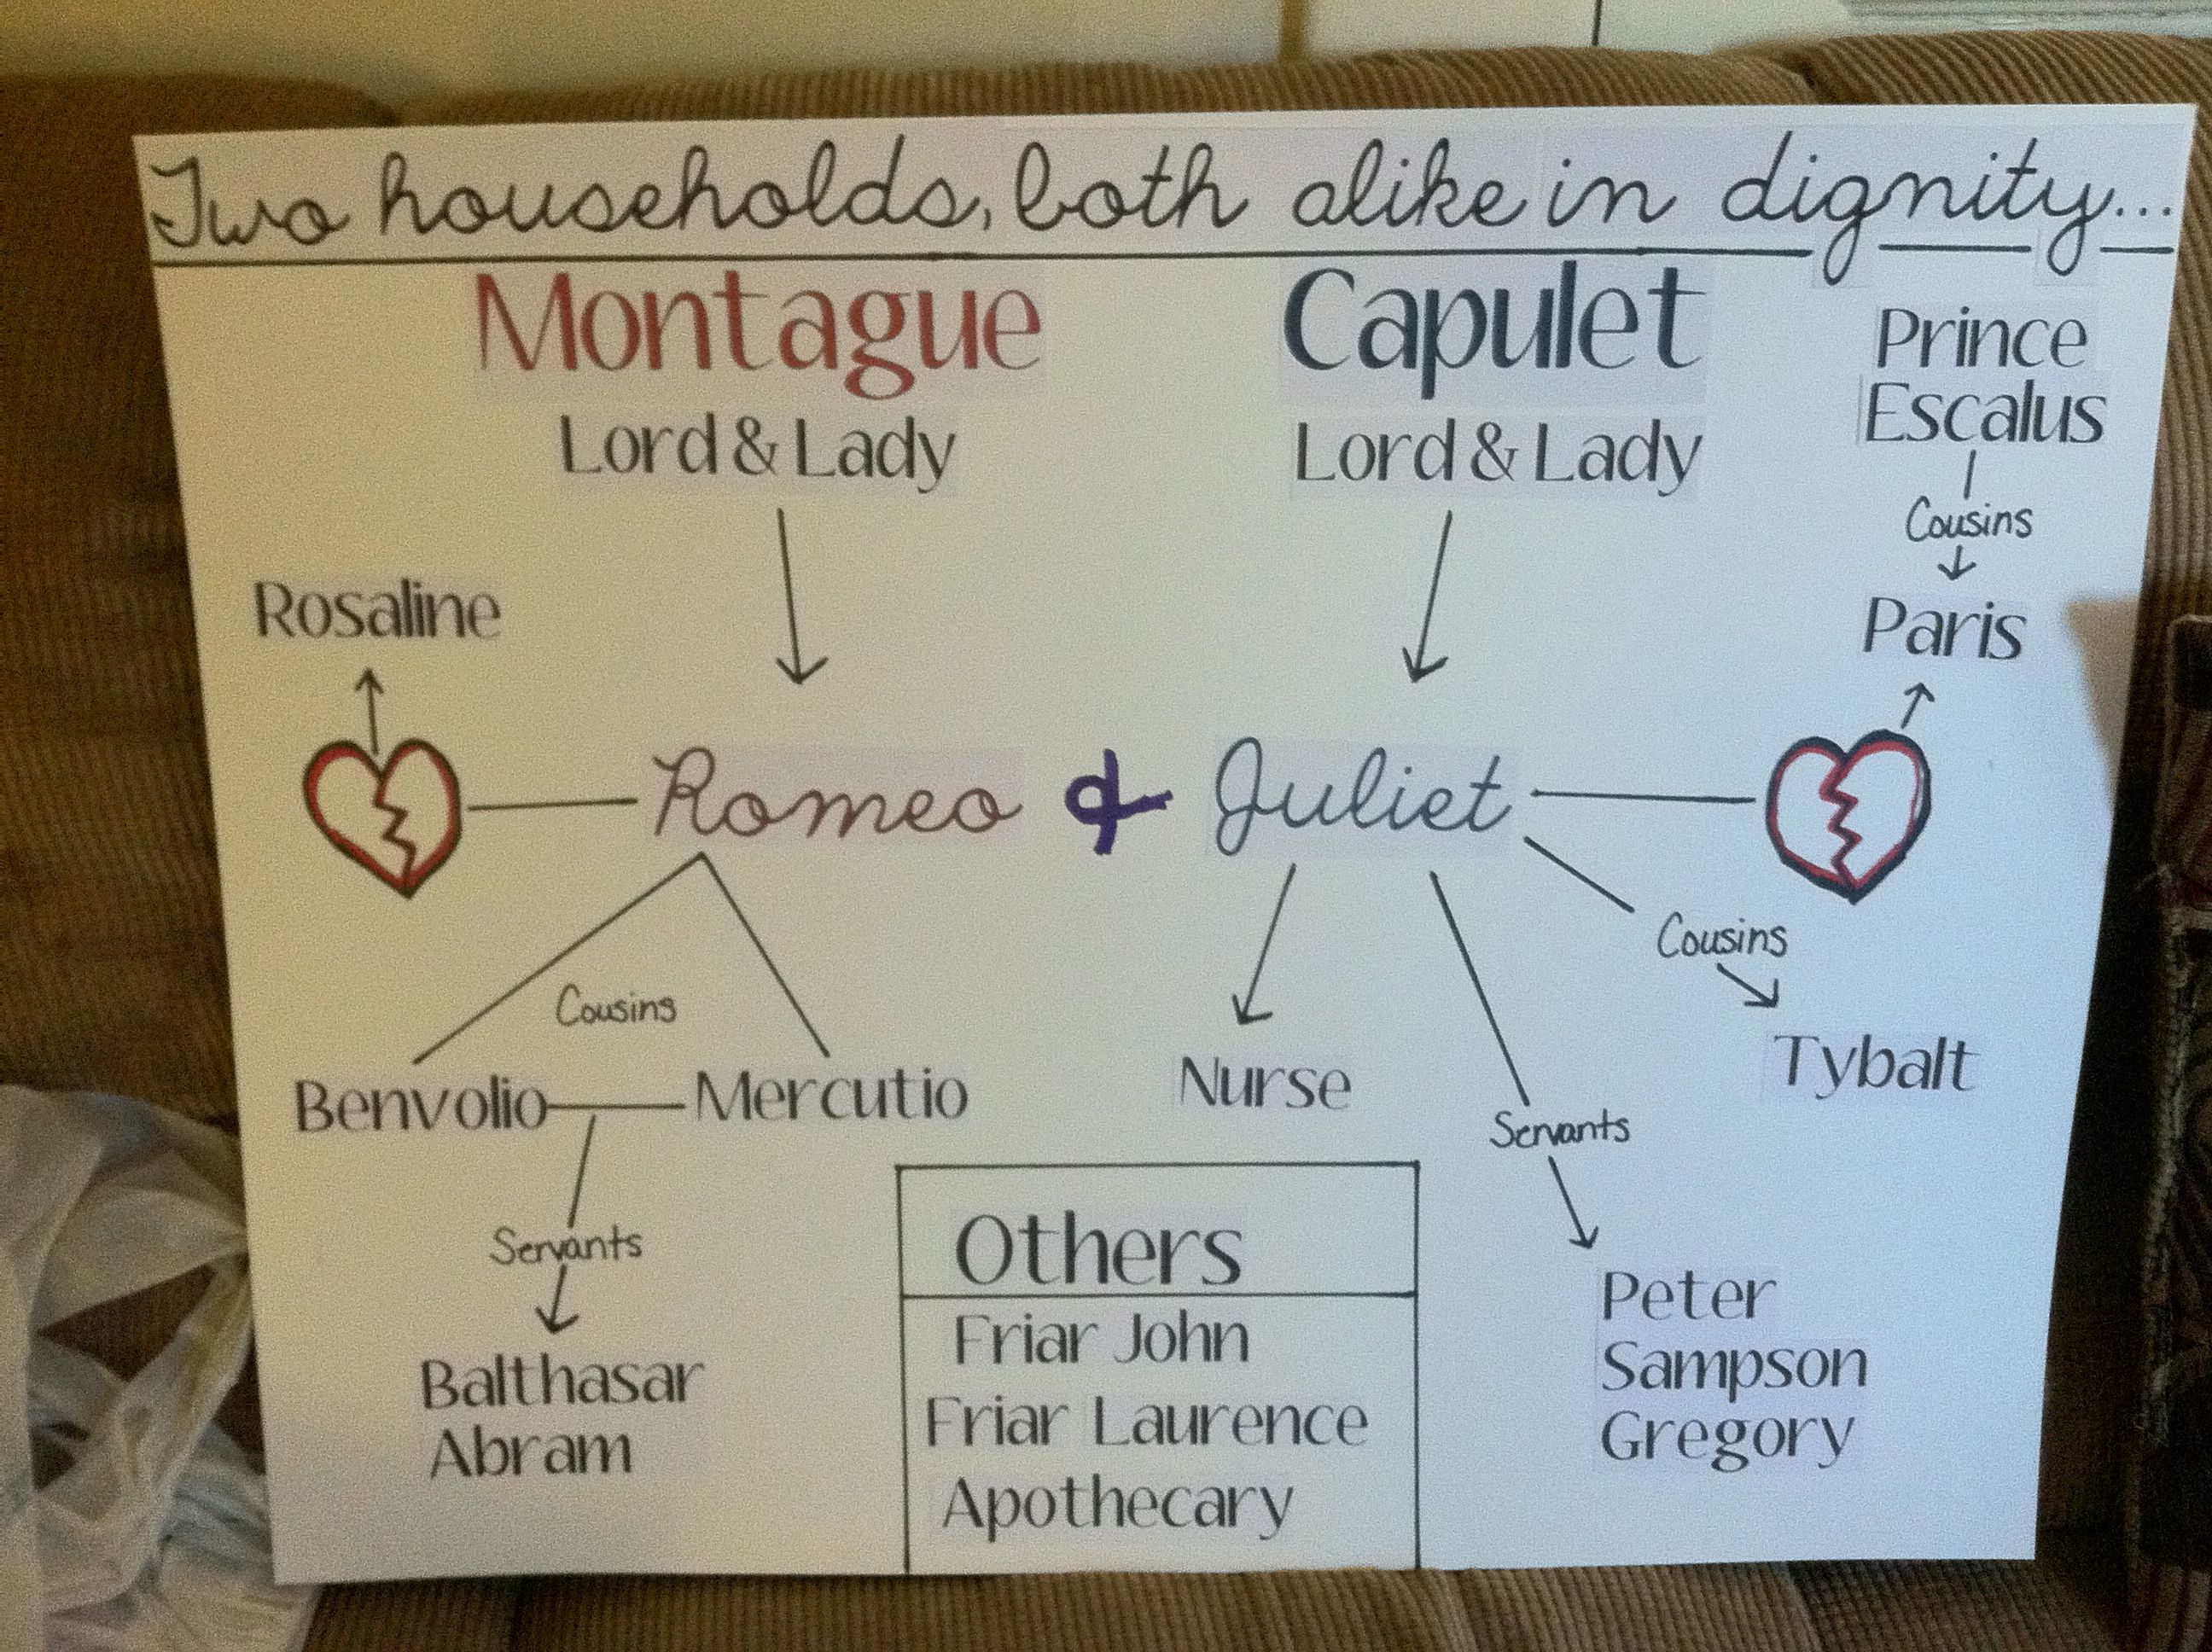 romeo and juliet foil characters essay Foil characters in romeo and juliet essay - part 2  romeo and juliet expository essay william shakespeare is known as the literary genius behind the classic play romeo and juliet - foil characters in romeo and juliet essay introduction.